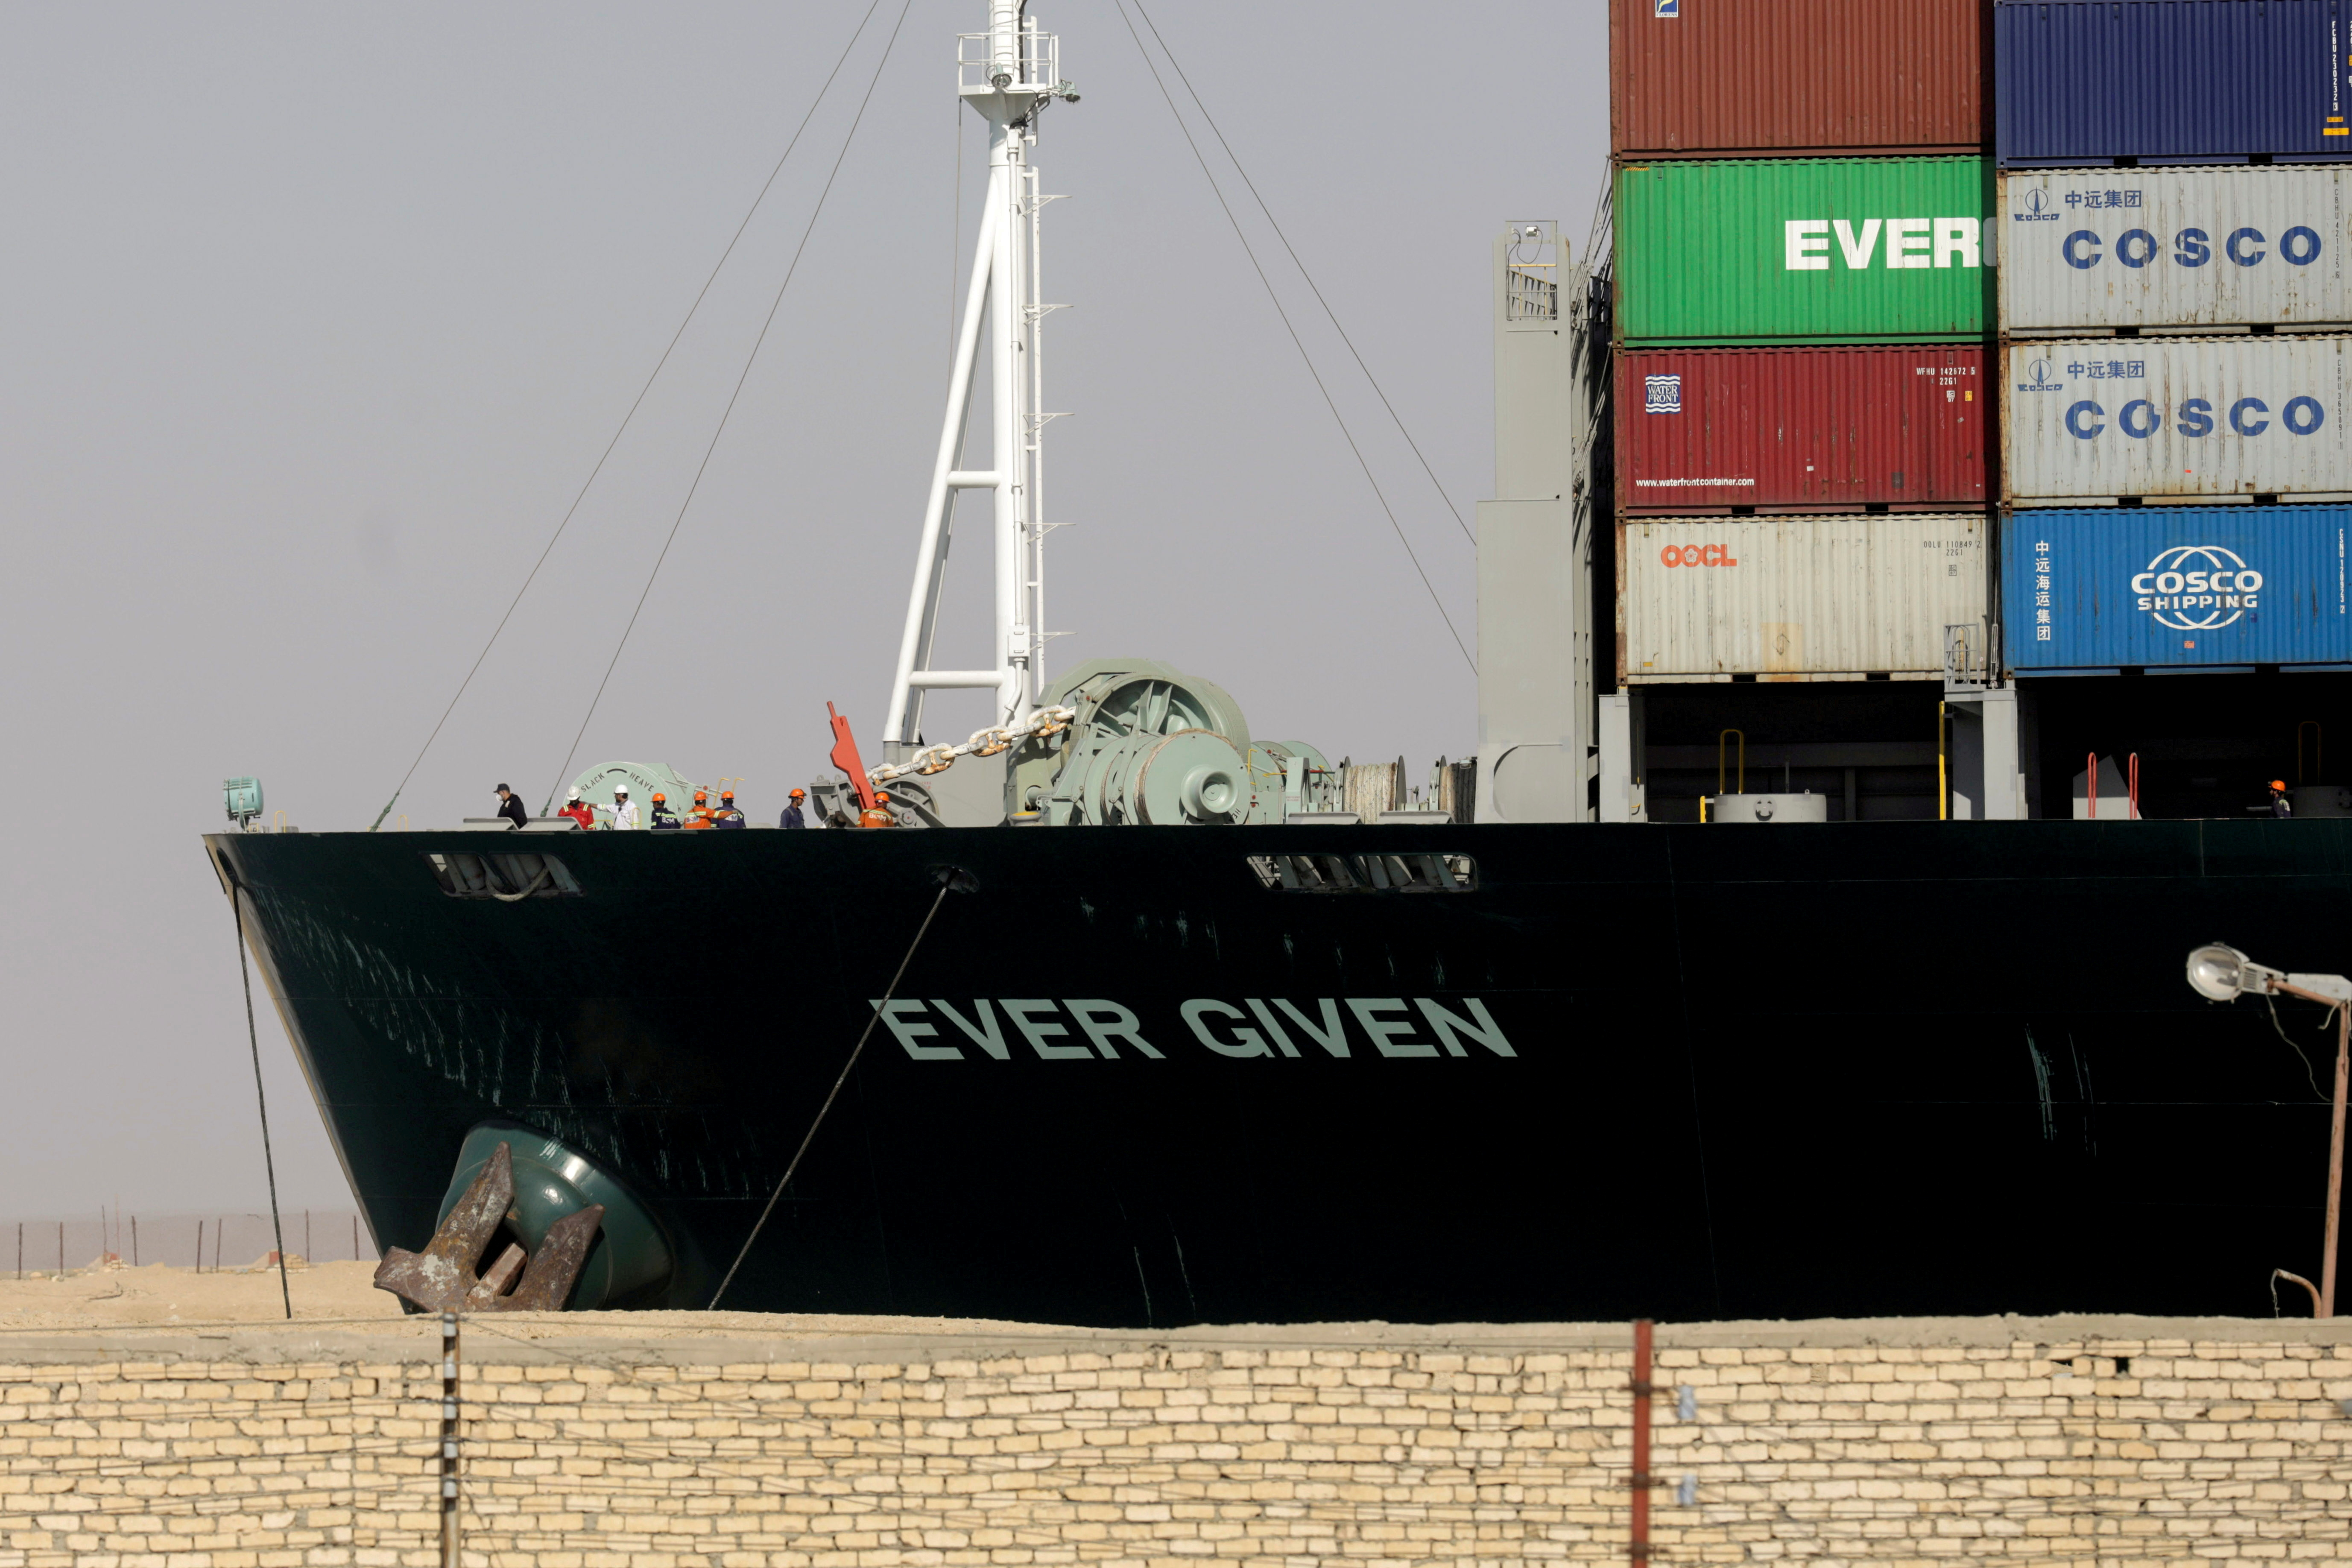 Ship Ever Given, one of the world's largest container ships, is seen after it was fully floated in Suez Canal, Egypt March 29, 2021. REUTERS/Mohamed Abd El Ghany